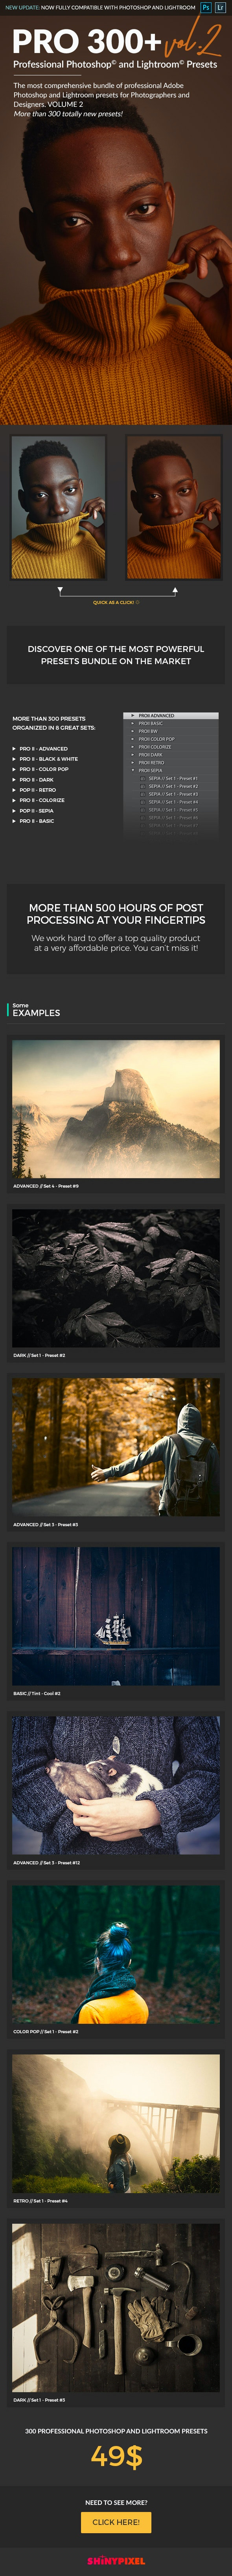 PRO 300 II - Professional Adobe Photoshop and Lightroom Presets - Lightroom Presets Add-ons